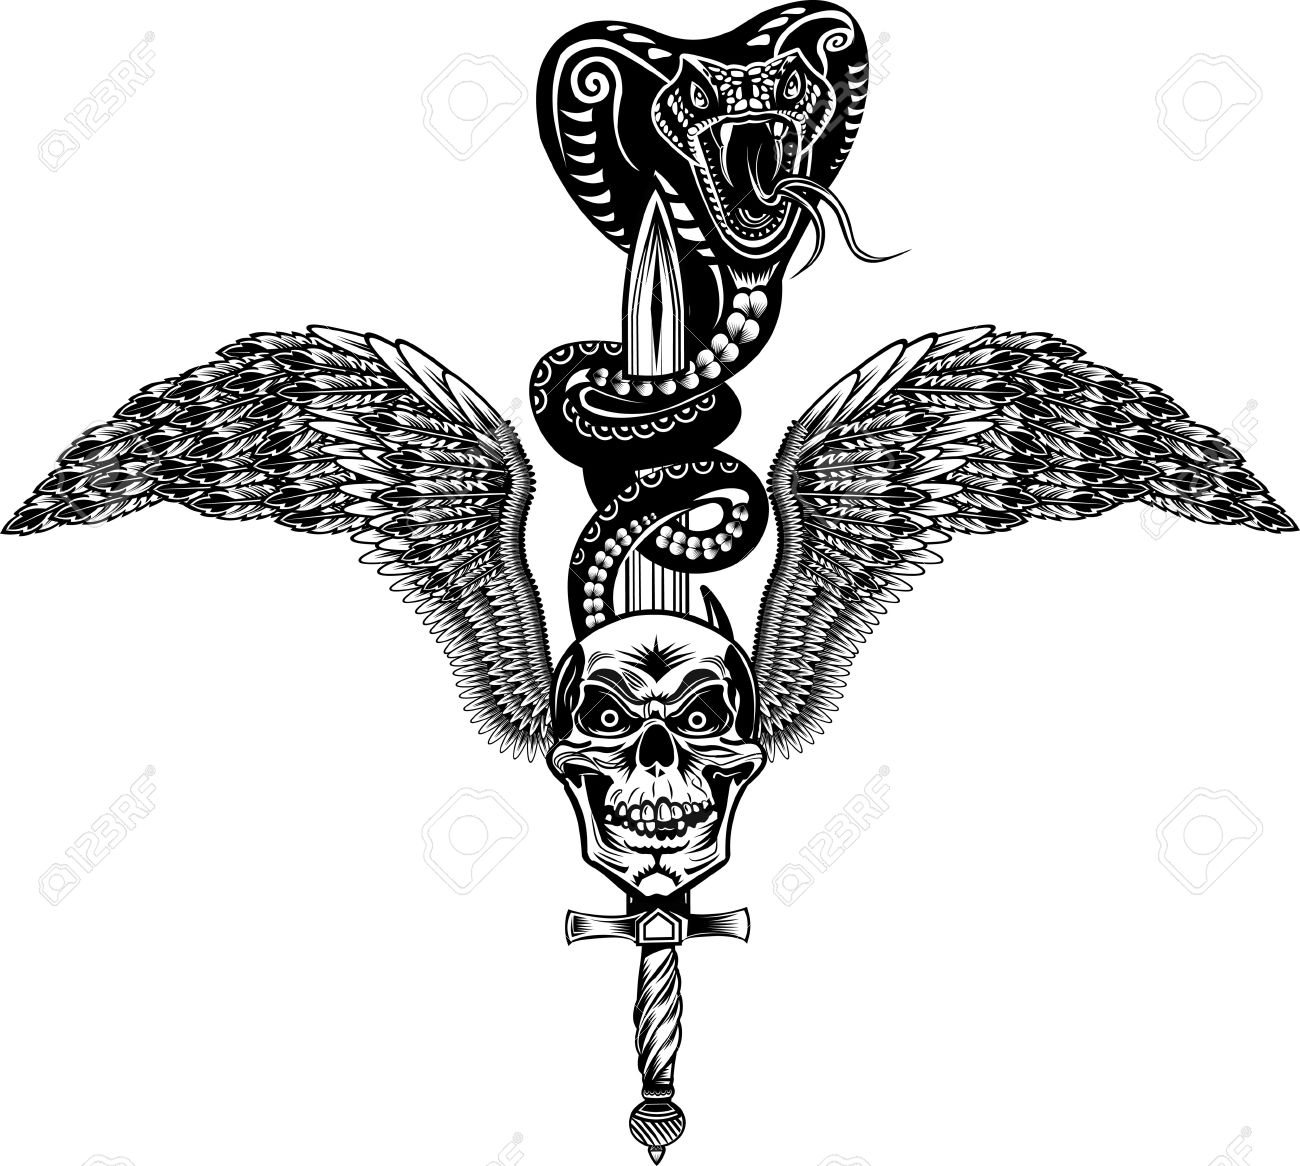 Name:  50056898-winged-skull-with-sword-and-snake-tattoo-cobra.jpg Views: 119 Size:  210.7 KB